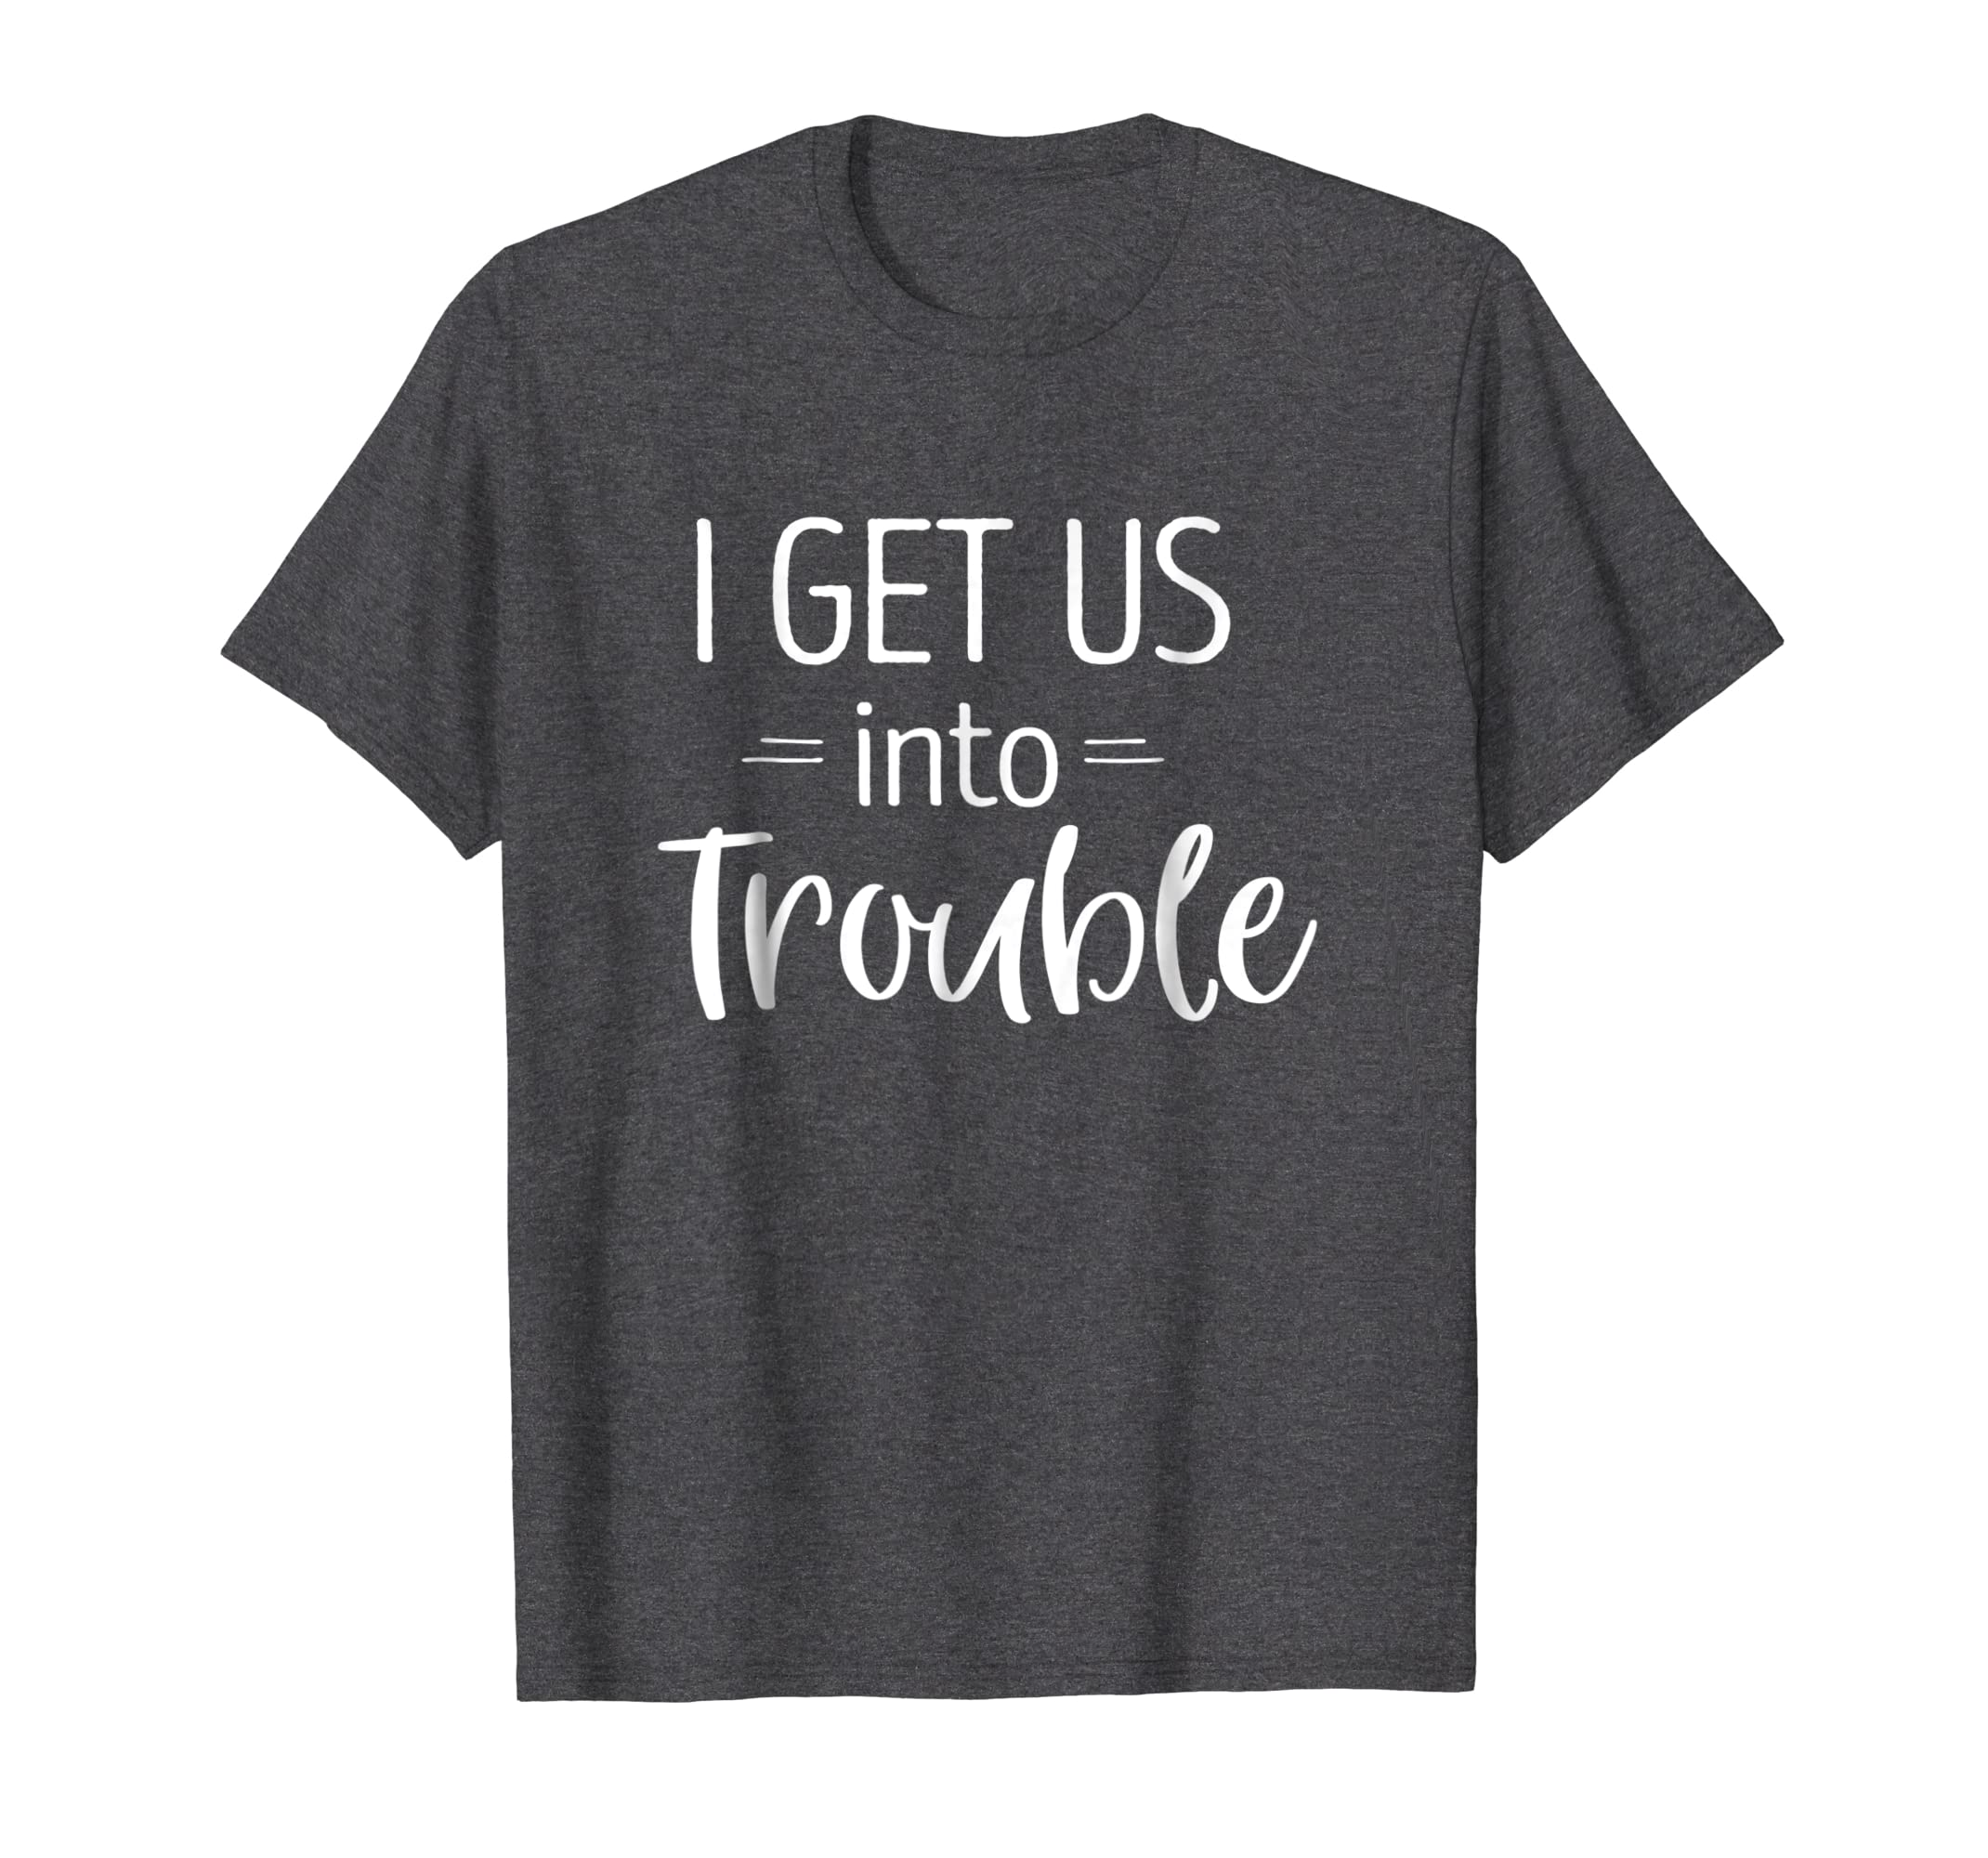 I Get us into Trouble Shirt Best Friend Shirts Troublemaker-Yolotee